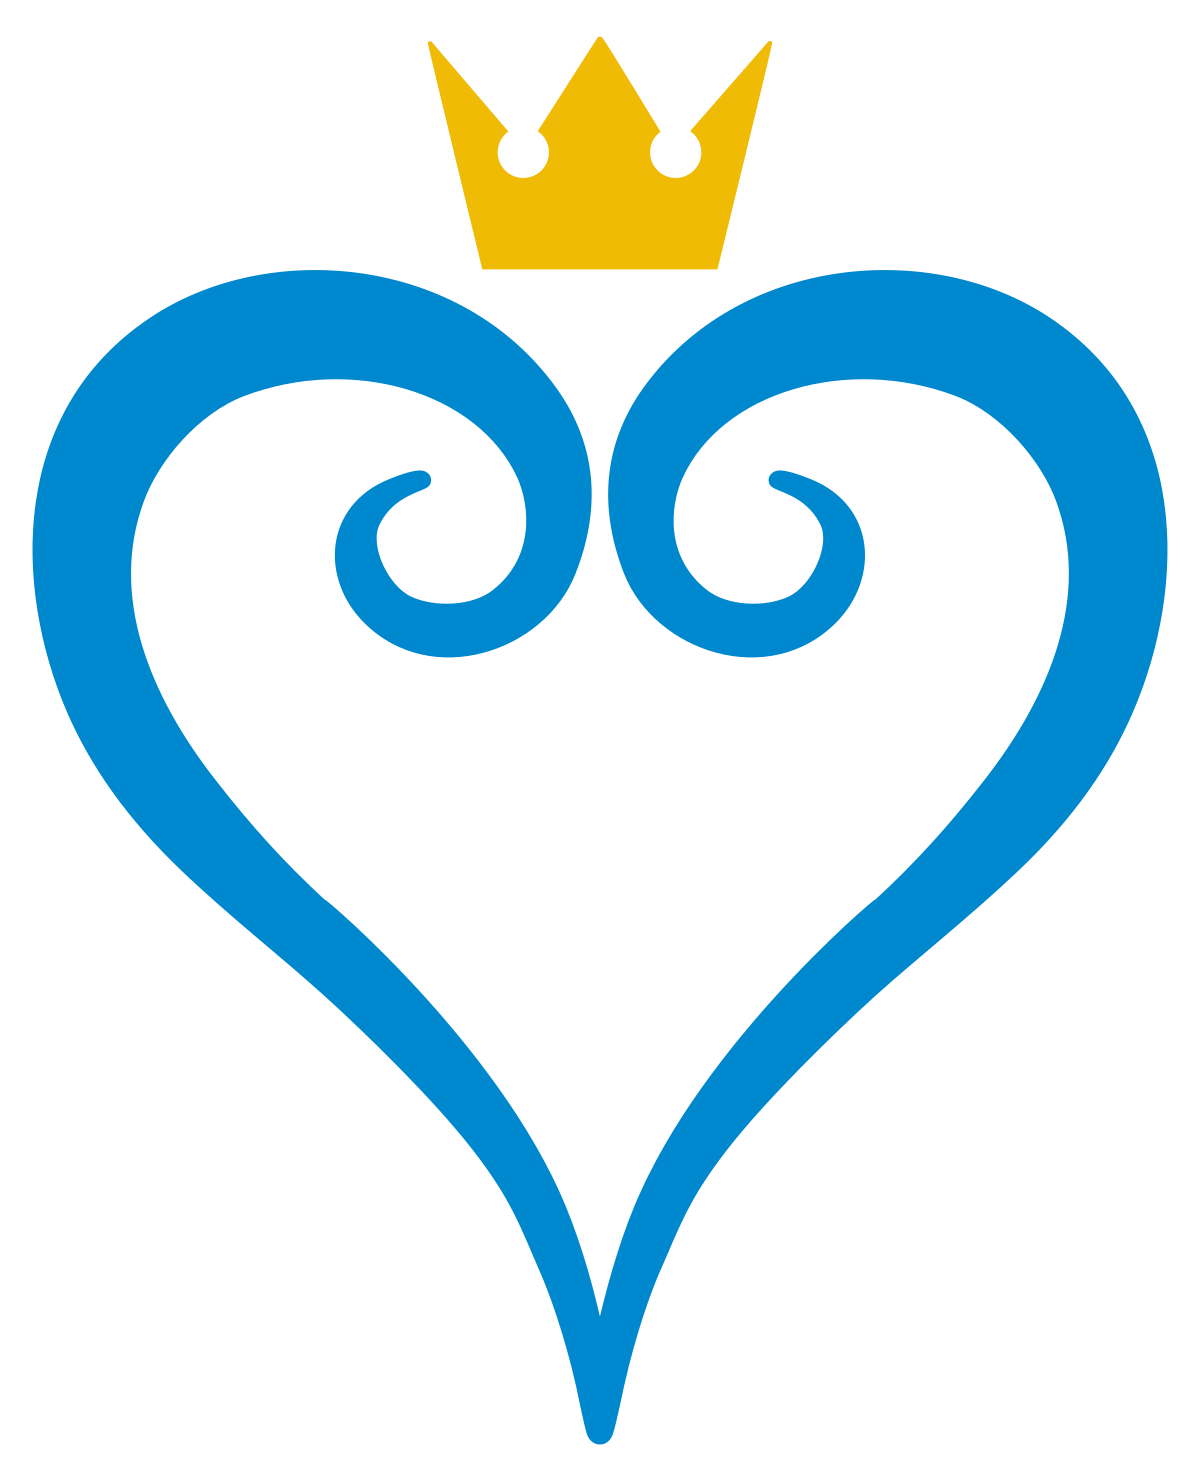 2 heart inside one another clipart image transparent Kingdom Hearts II - Wikiquote image transparent